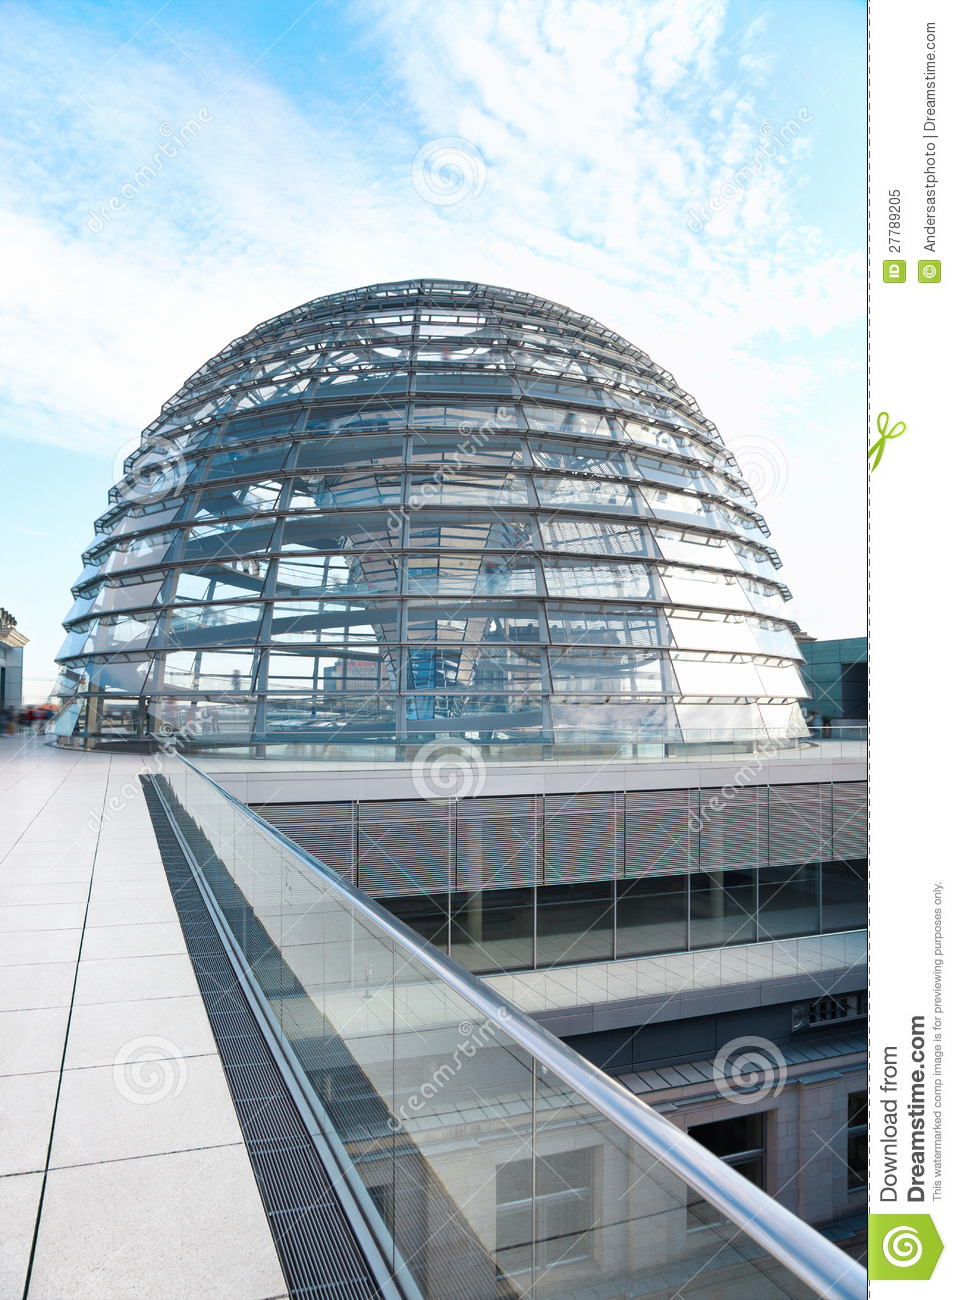 Modern Architecture Berlin reichstag dome, berlin modern architecture royalty free stock